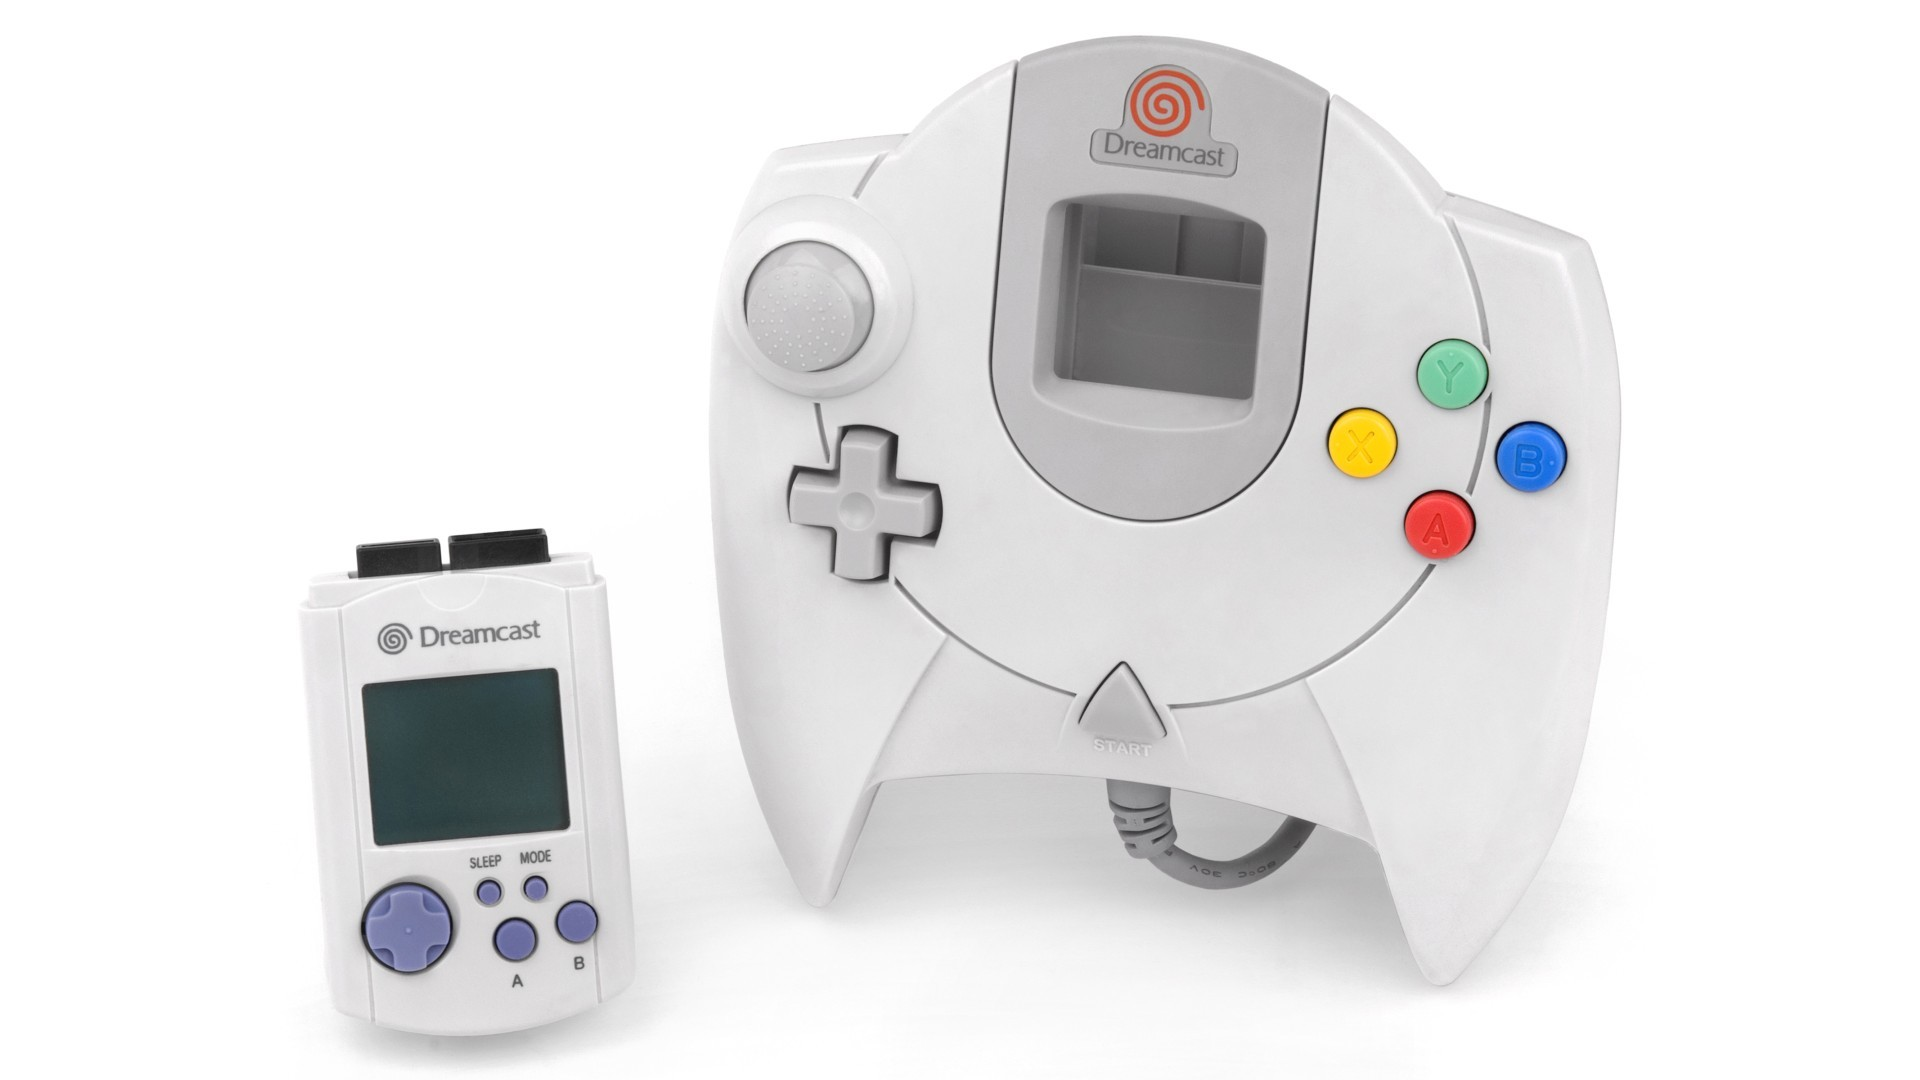 The Dreamcast only sold 10.6 million units, including units sold after the  Dreamcast was discontinued, and forced Sega to …